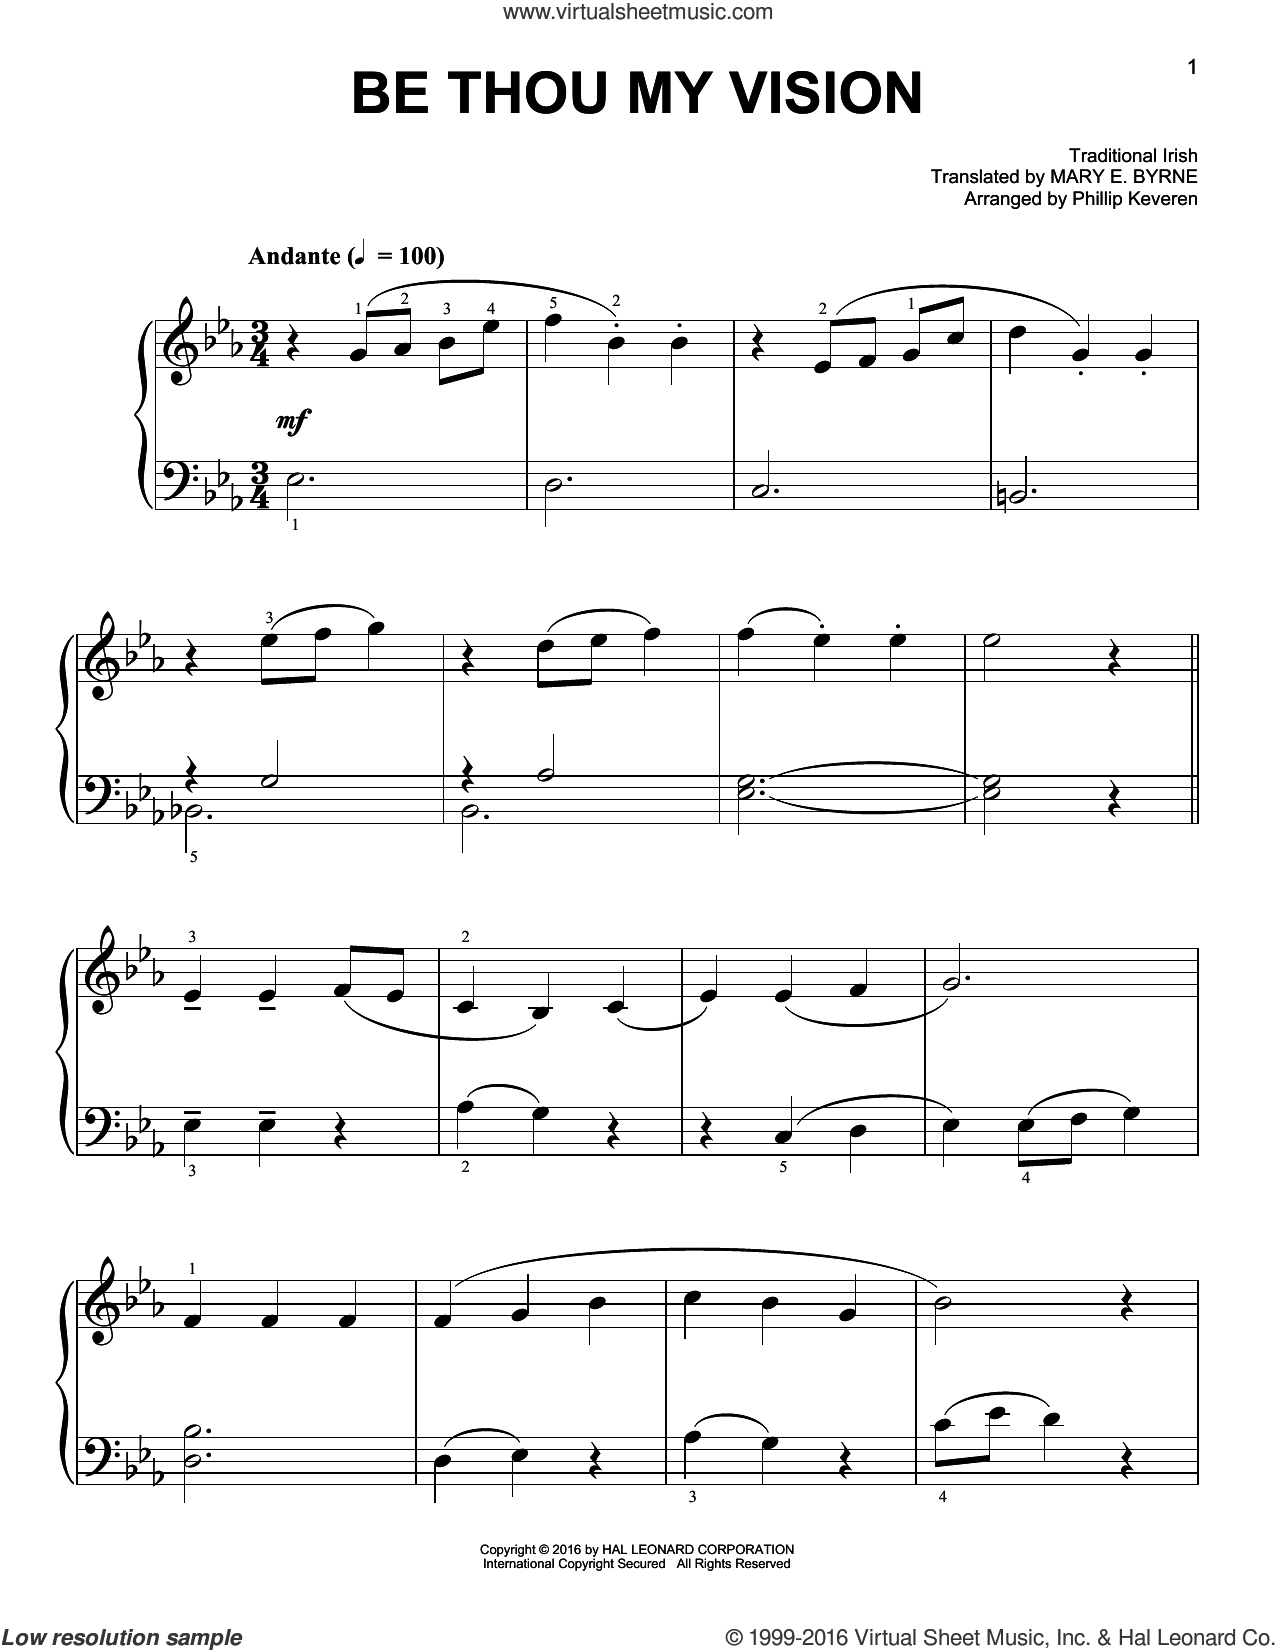 Be Thou My Vision sheet music for piano solo by Traditional Irish and Phillip Keveren, easy. Score Image Preview.